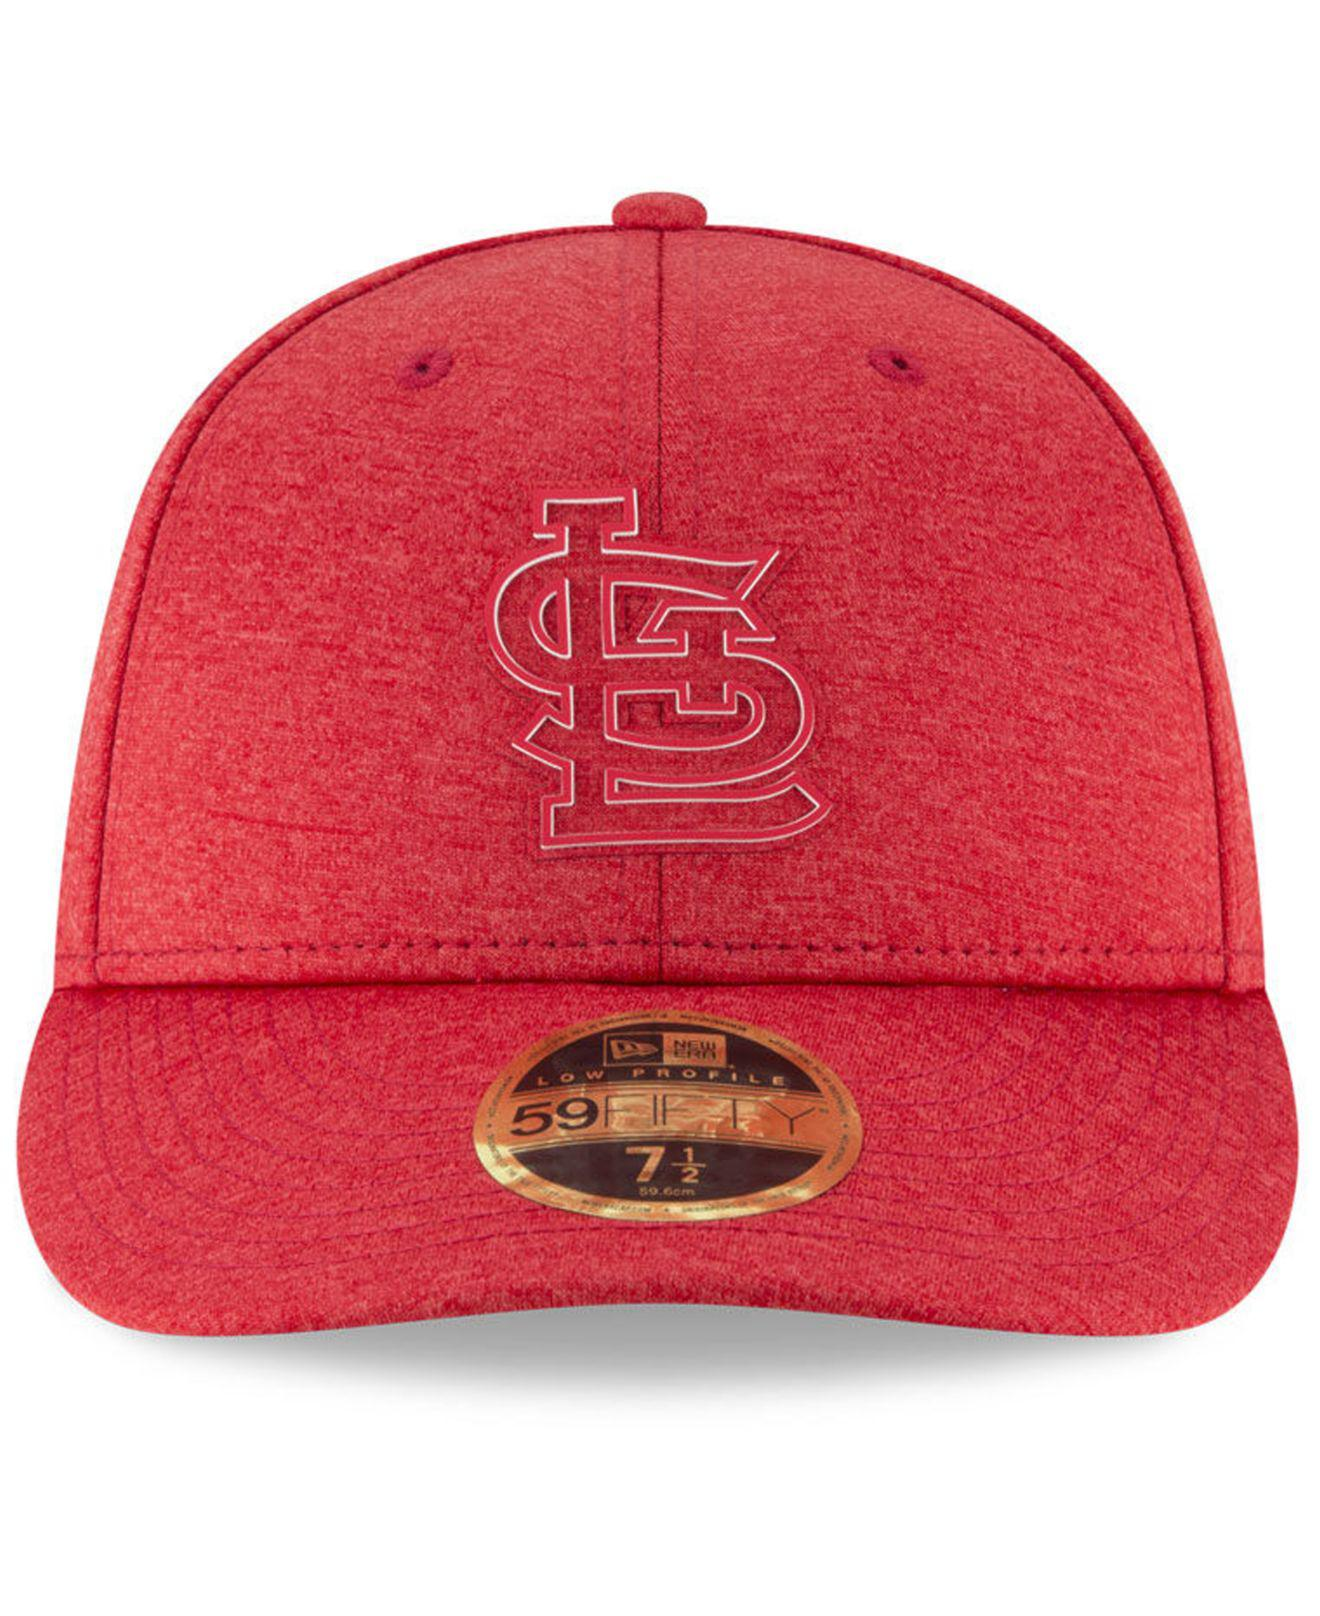 best service 16843 d87a6 Lyst - KTZ St. Louis Cardinals Clubhouse Low Crown 59fifty Fitted Cap in Red  for Men